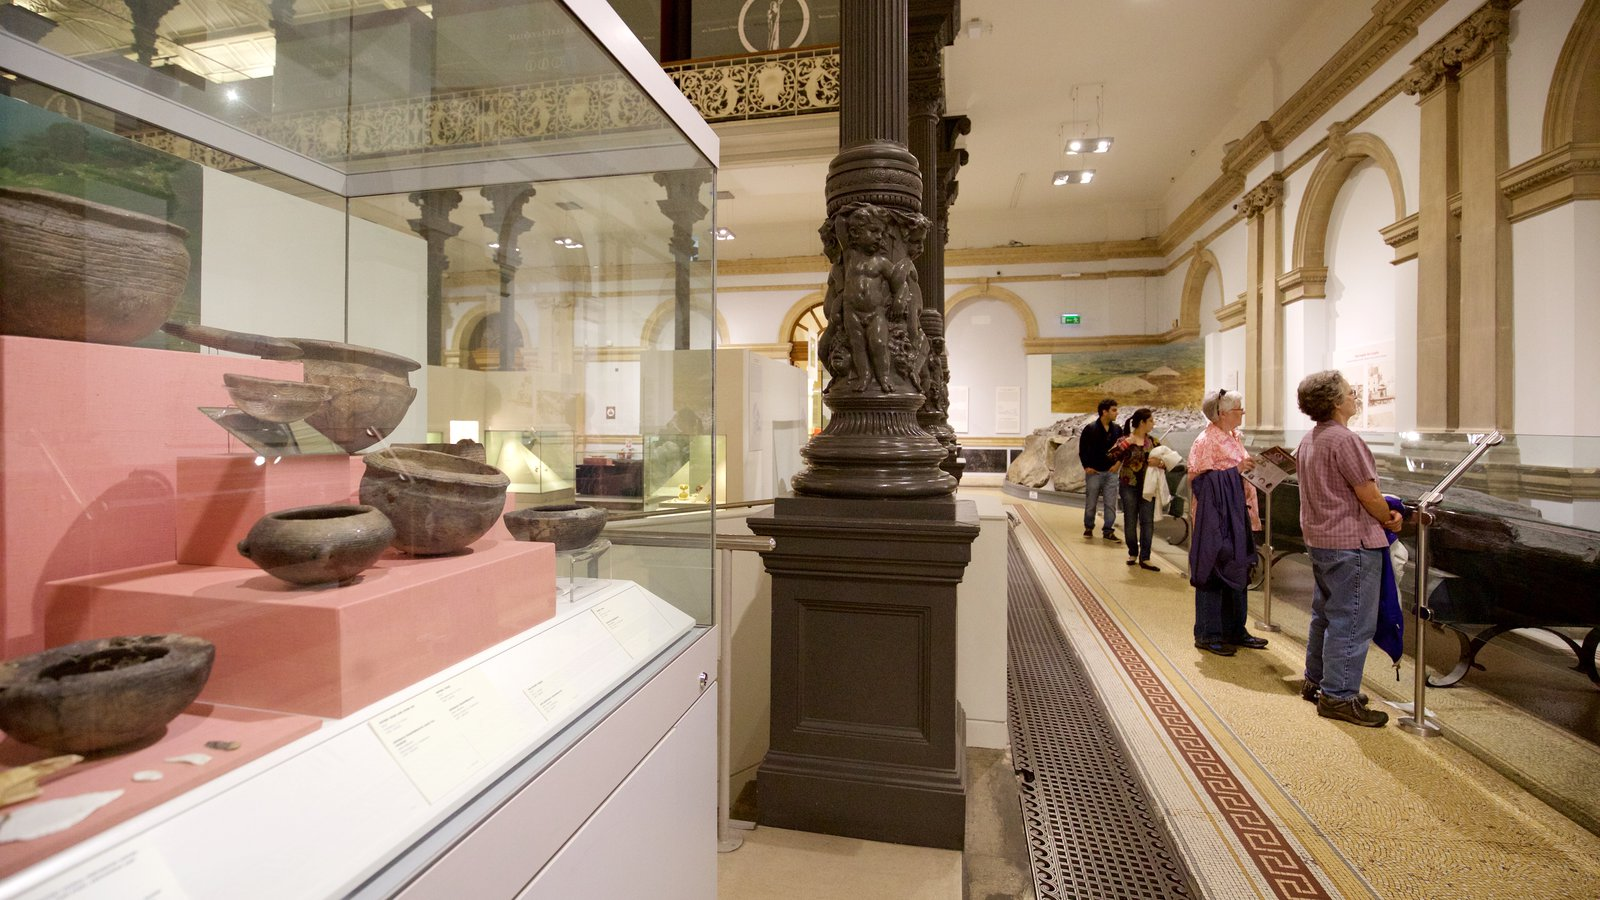 National Museum of Ireland - Archaeology and History showing interior views as well as a small group of people